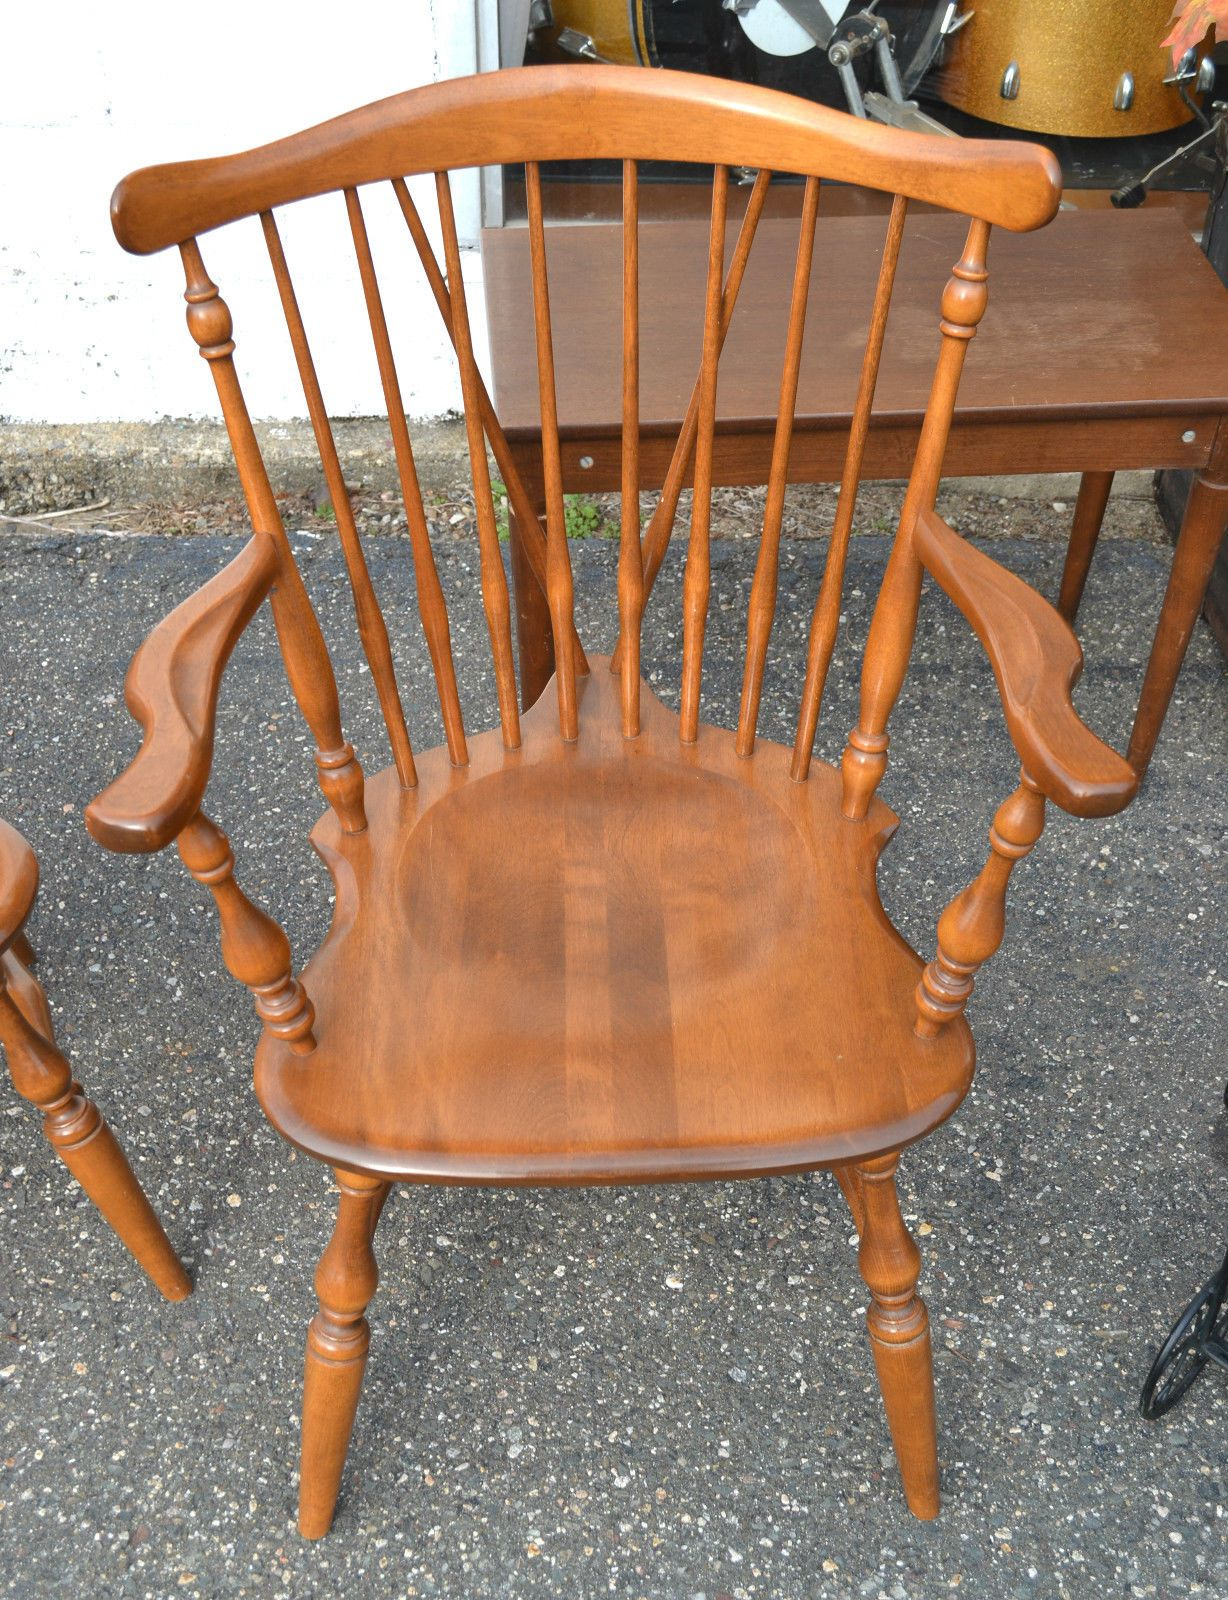 maple rocking chair swing office ethan allen early american birch and diningroom style